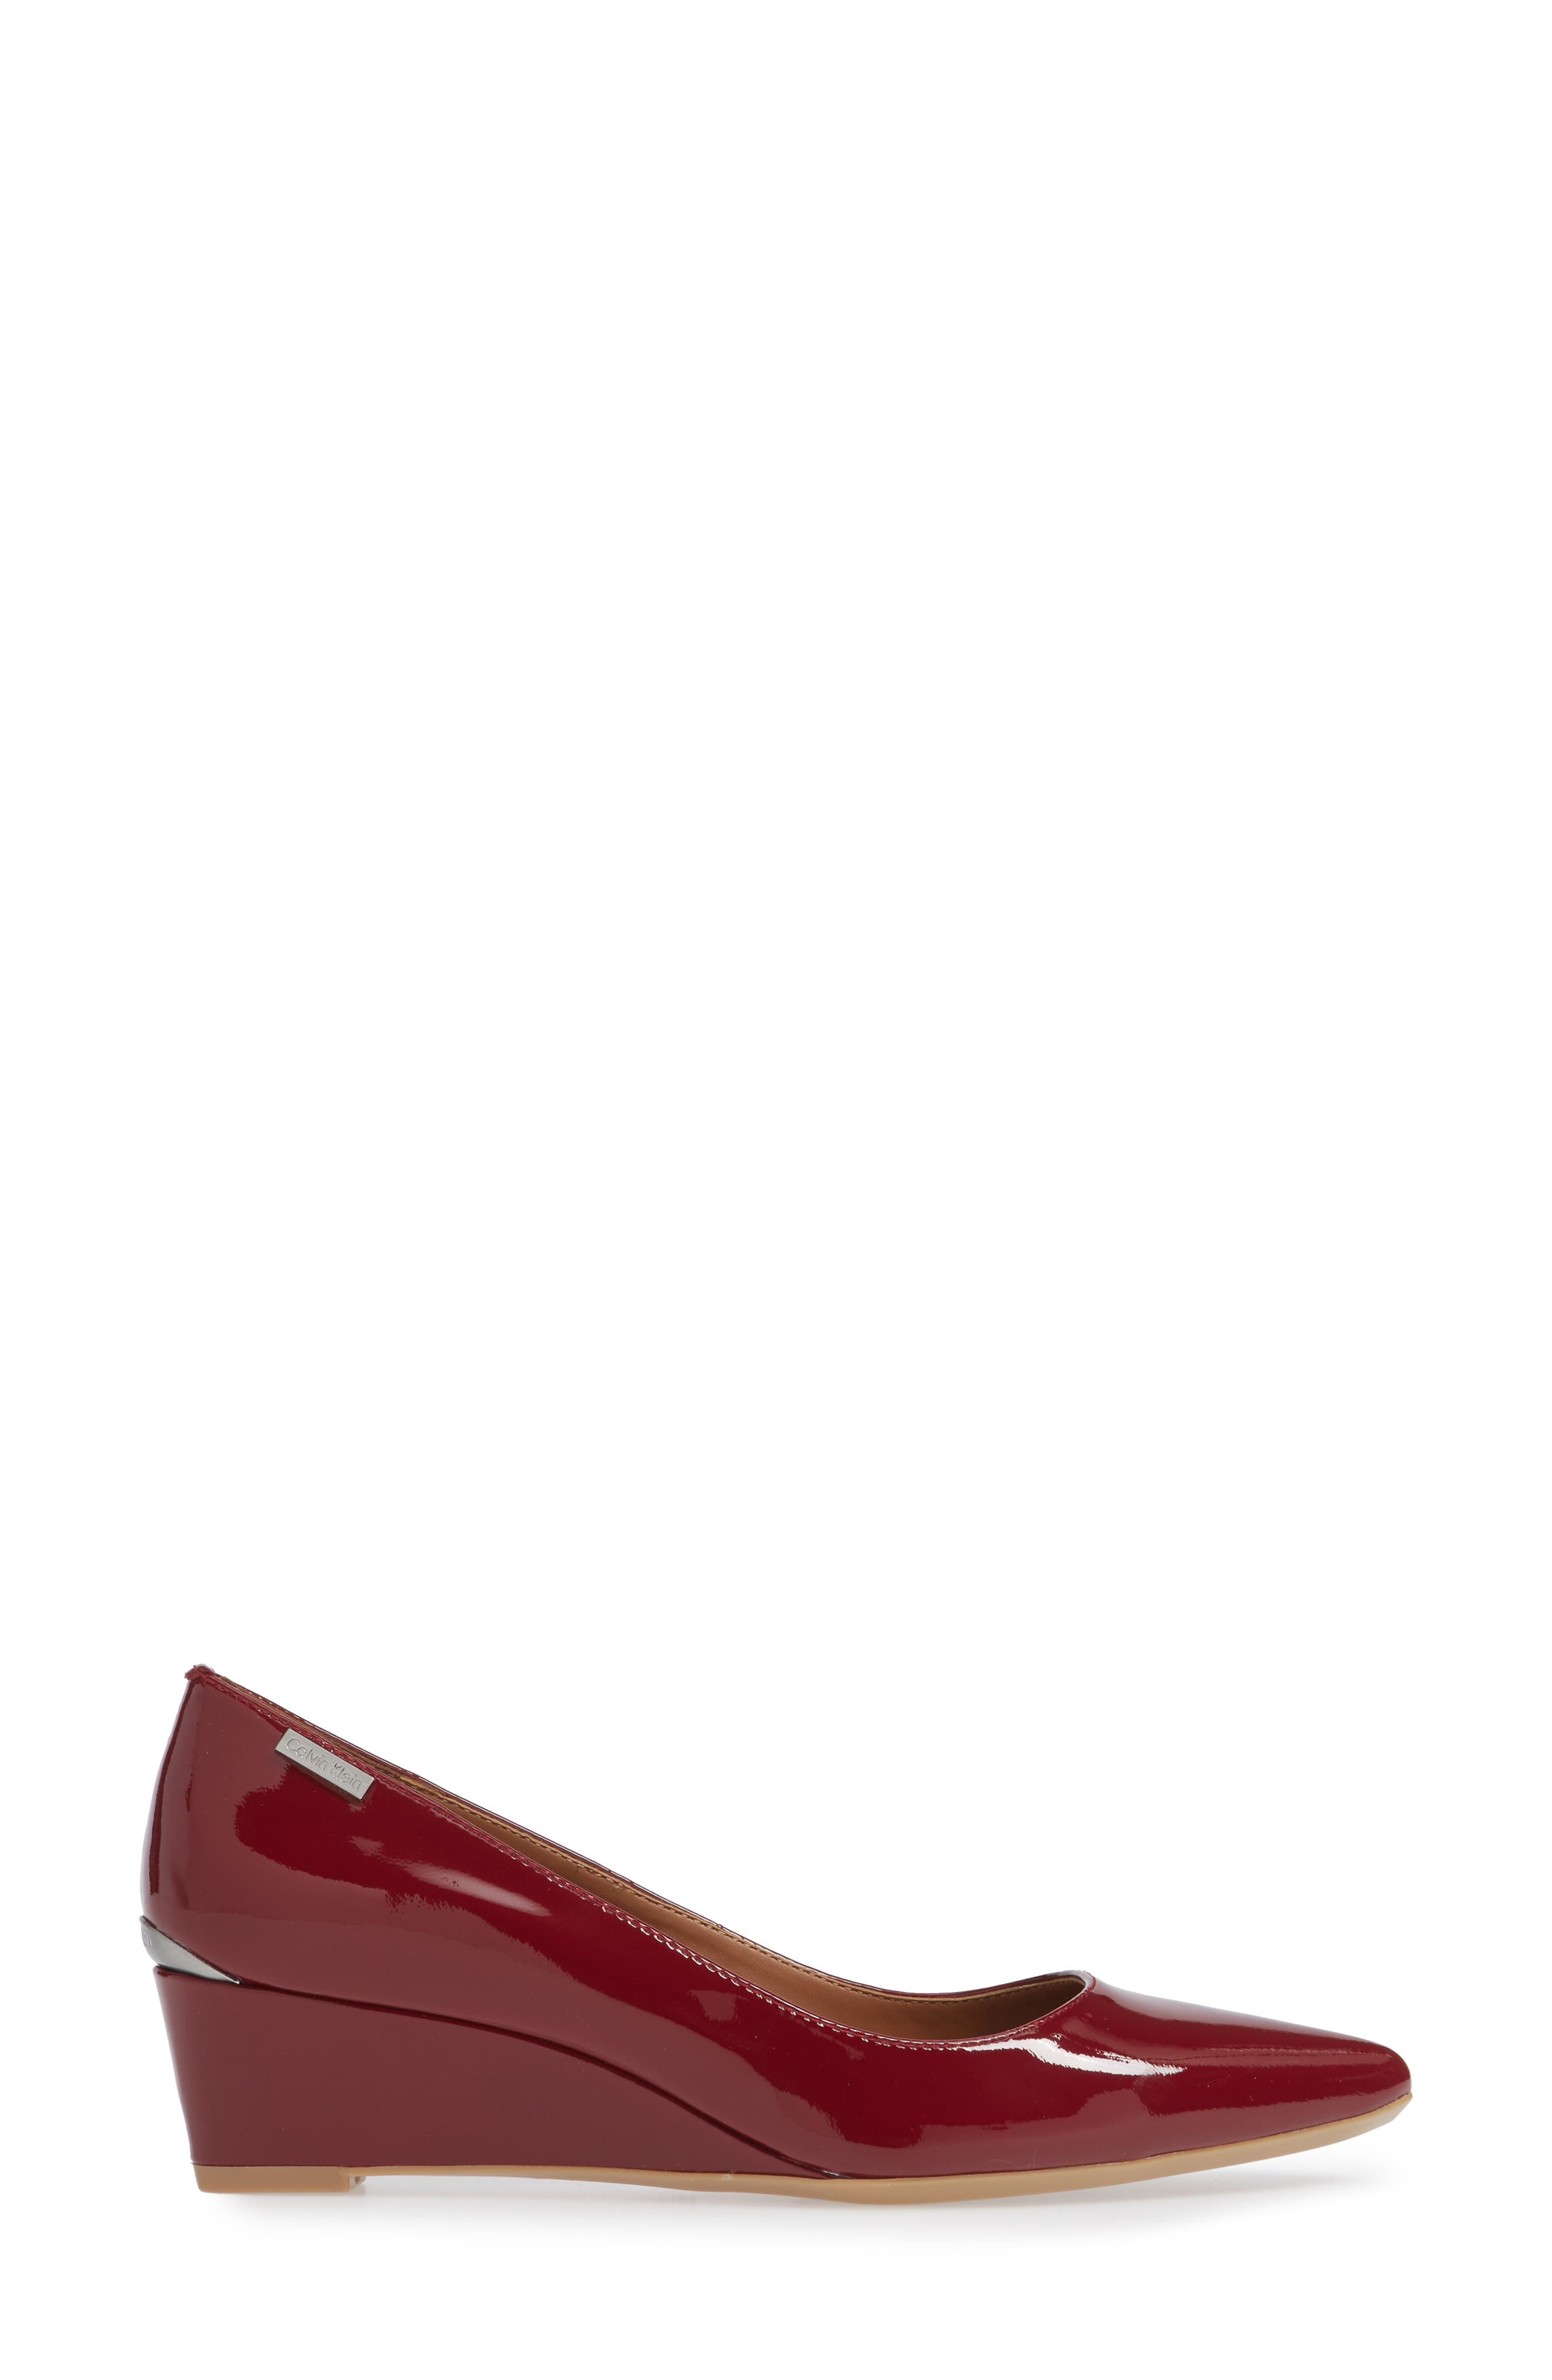 'Germina' Pointy Toe Wedge,                             Alternate thumbnail 6, color,                             Red Rock Patent